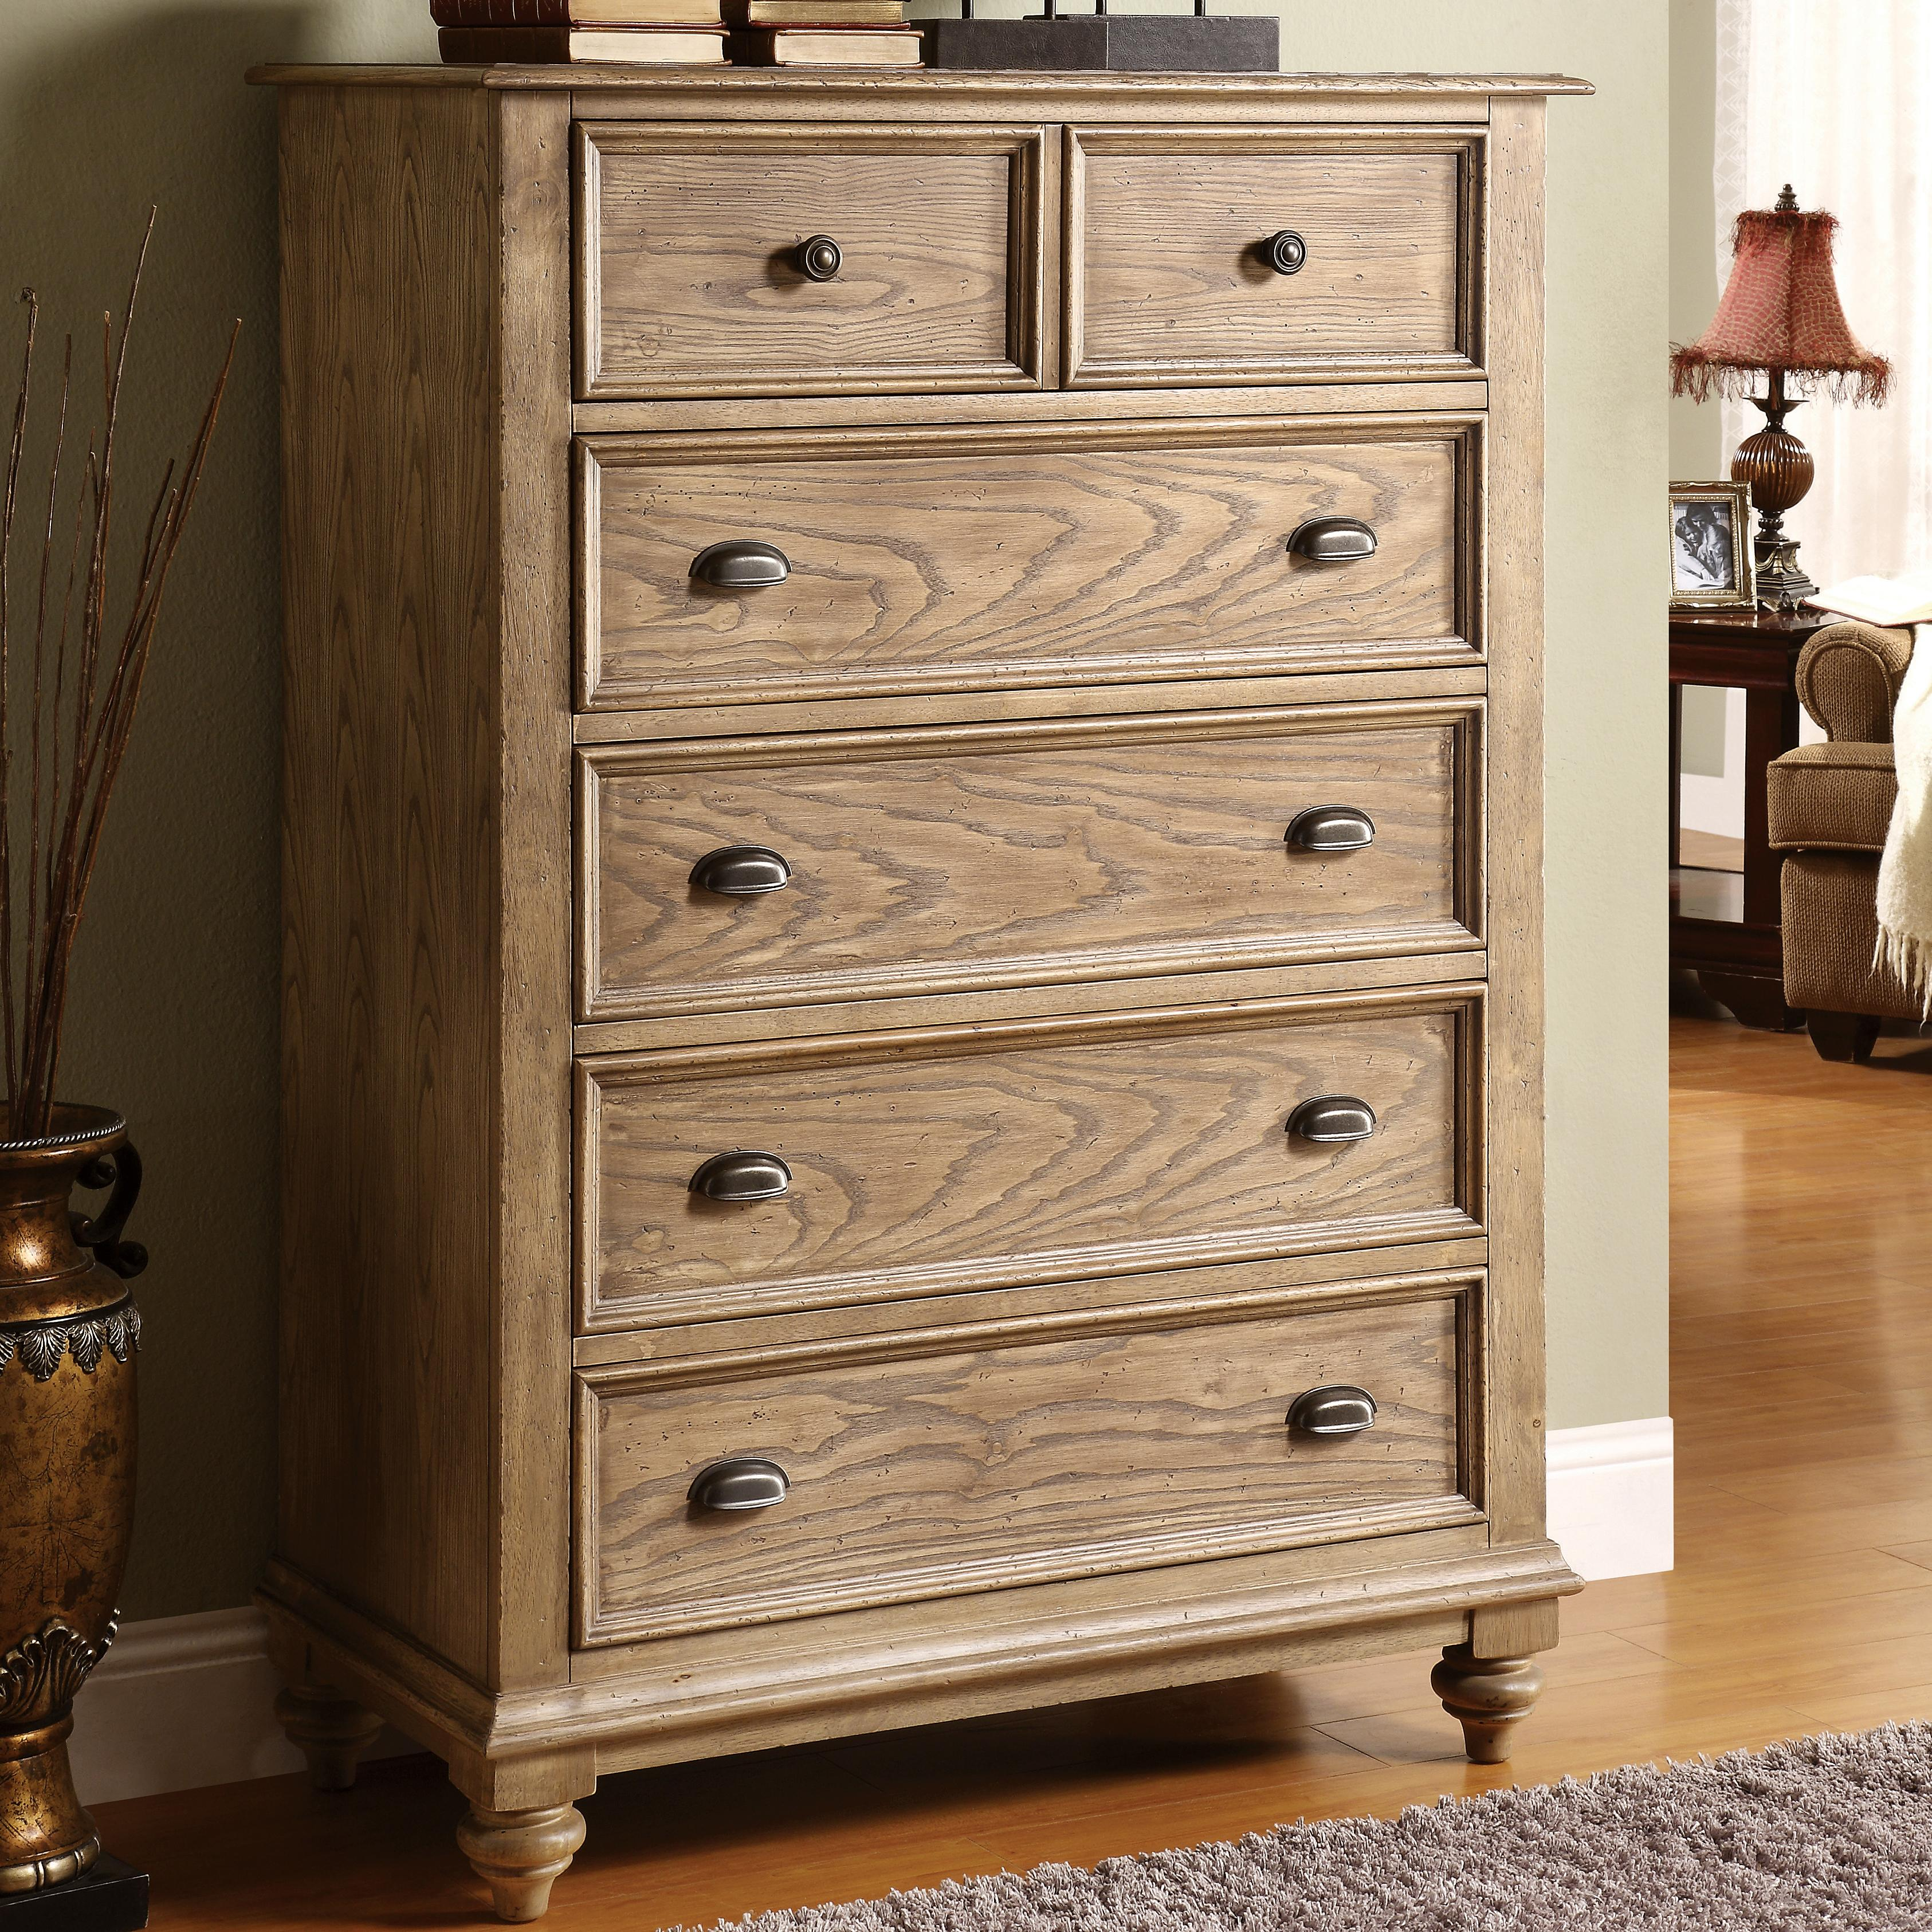 Leather Sofa Repairs In Coventry: Riverside Furniture Coventry Tall 5 Drawer Chest With Bun